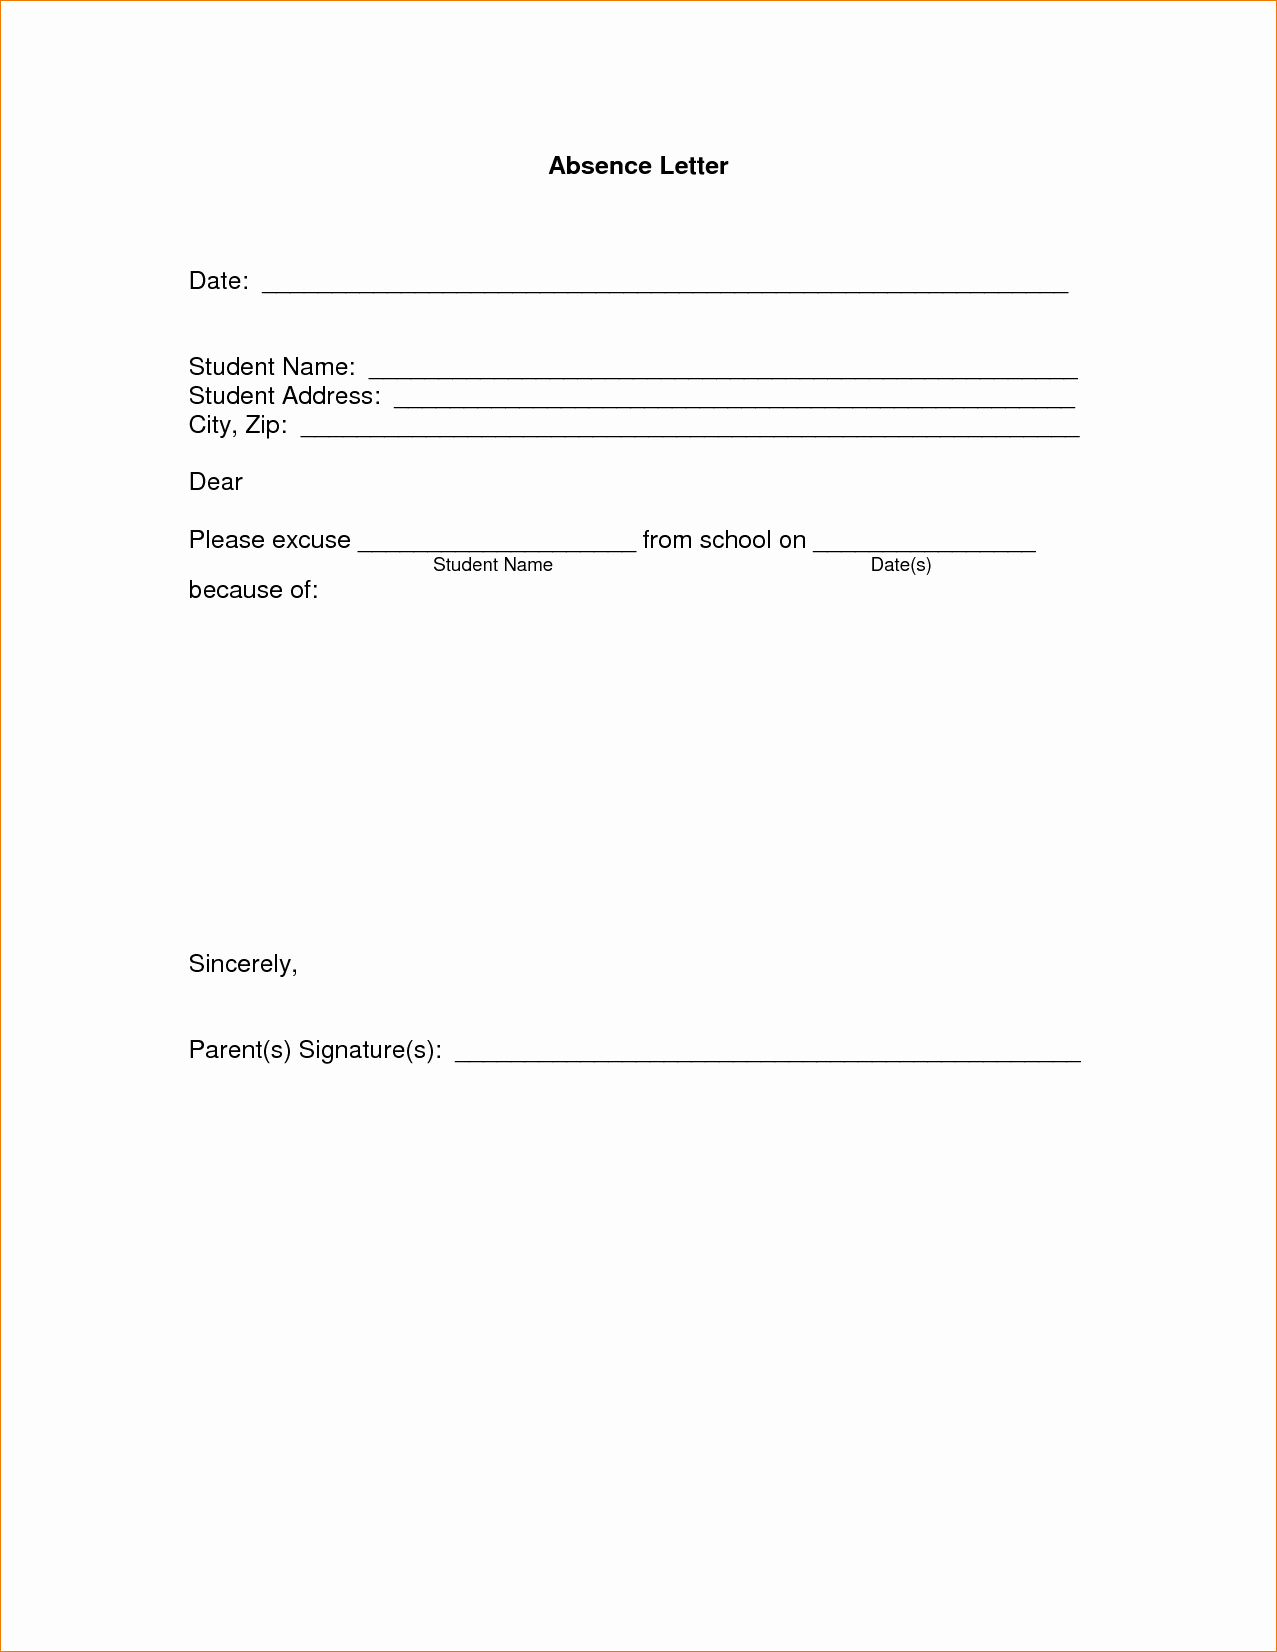 Excuse Absence From School Letter New 11 Absence Excuse Letteragenda Template Sample